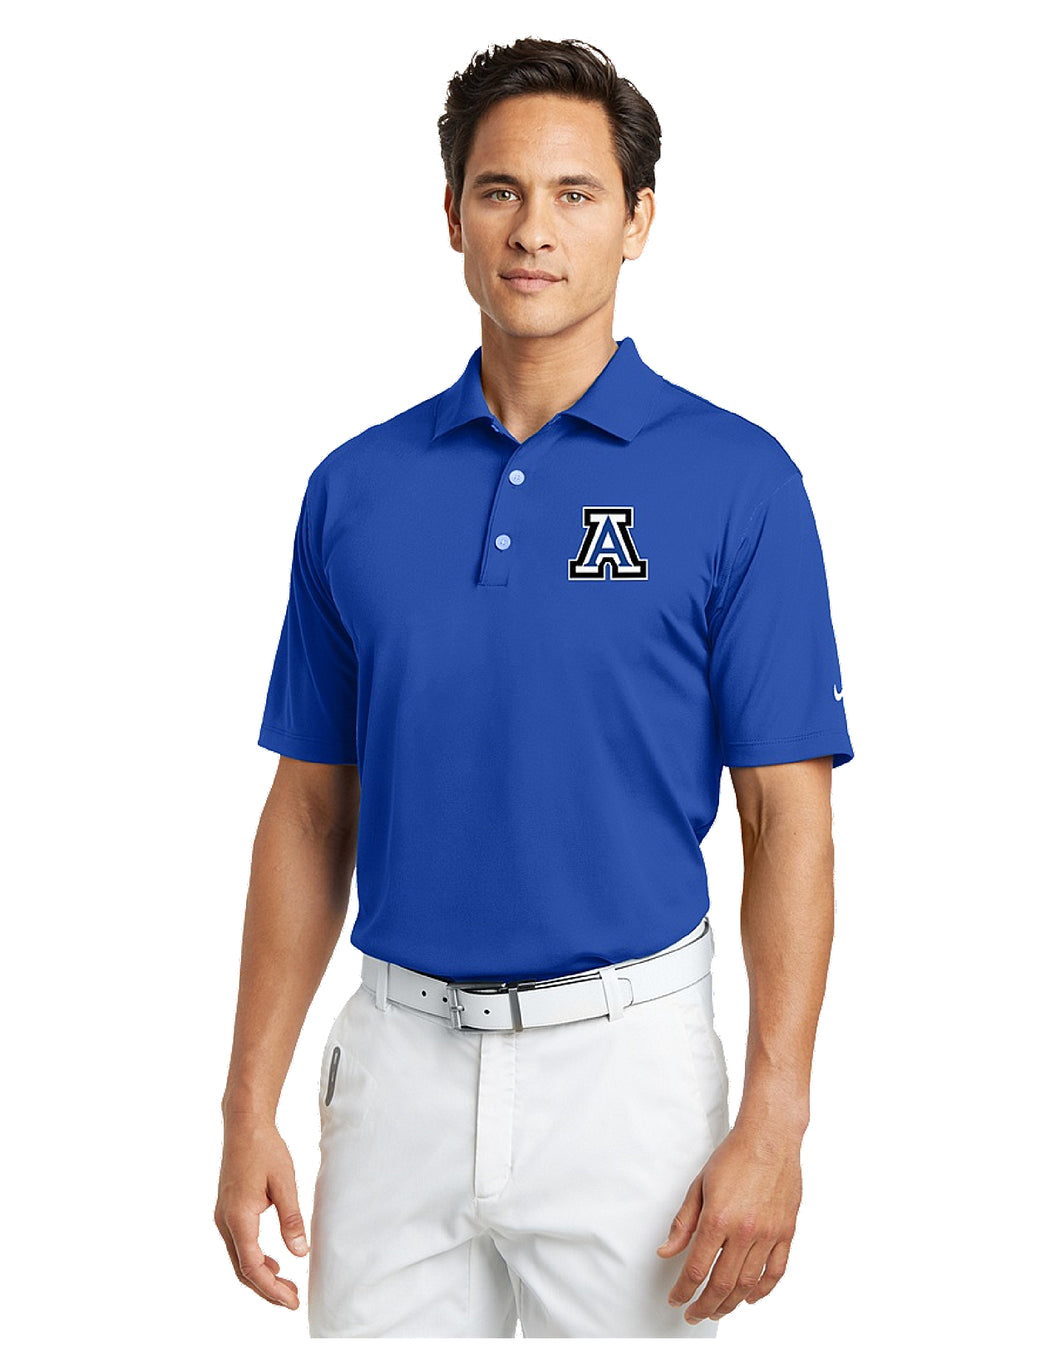 Nike Tech Basic Dri-FIT Polo Royal with Embroidered Acalanes